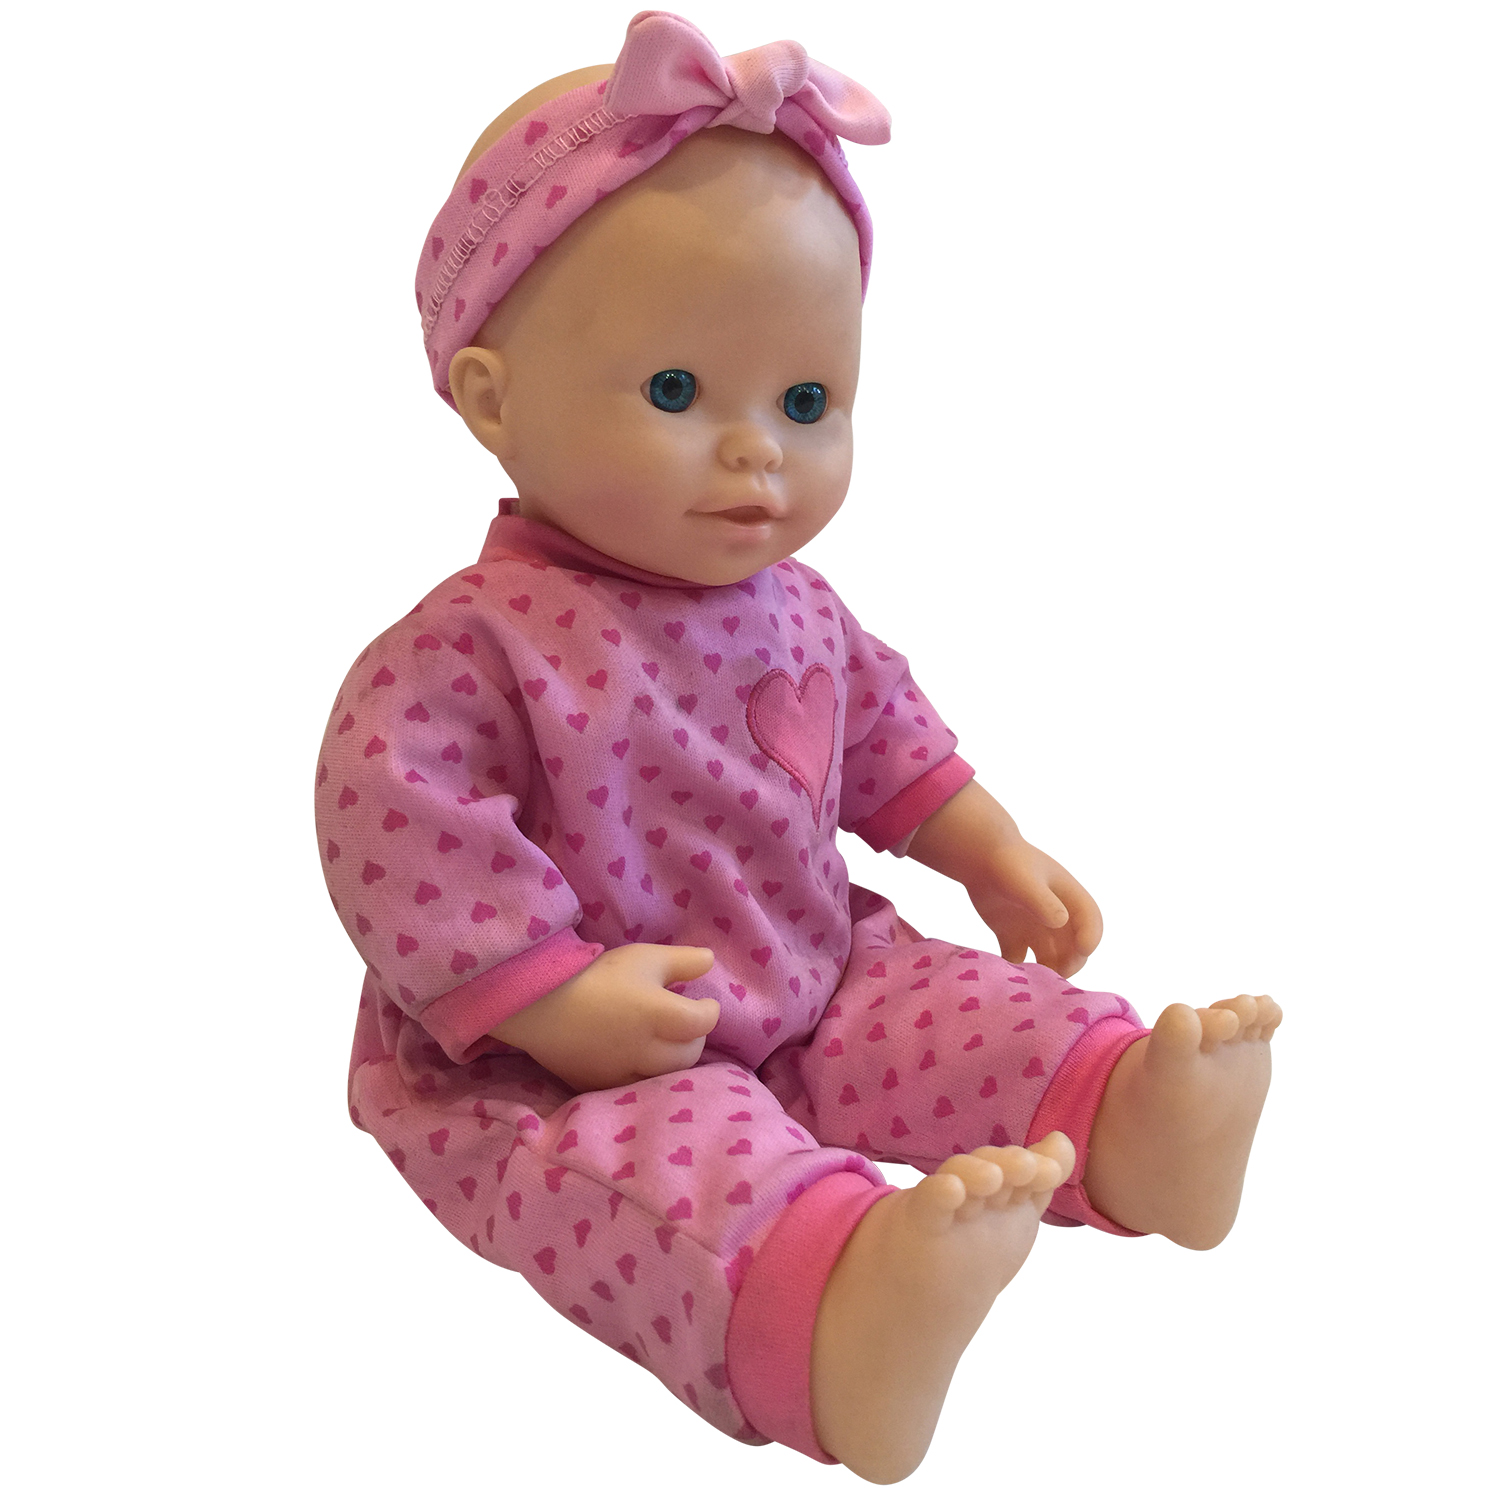 New York Doll Collection On Walmart Seller Reviews